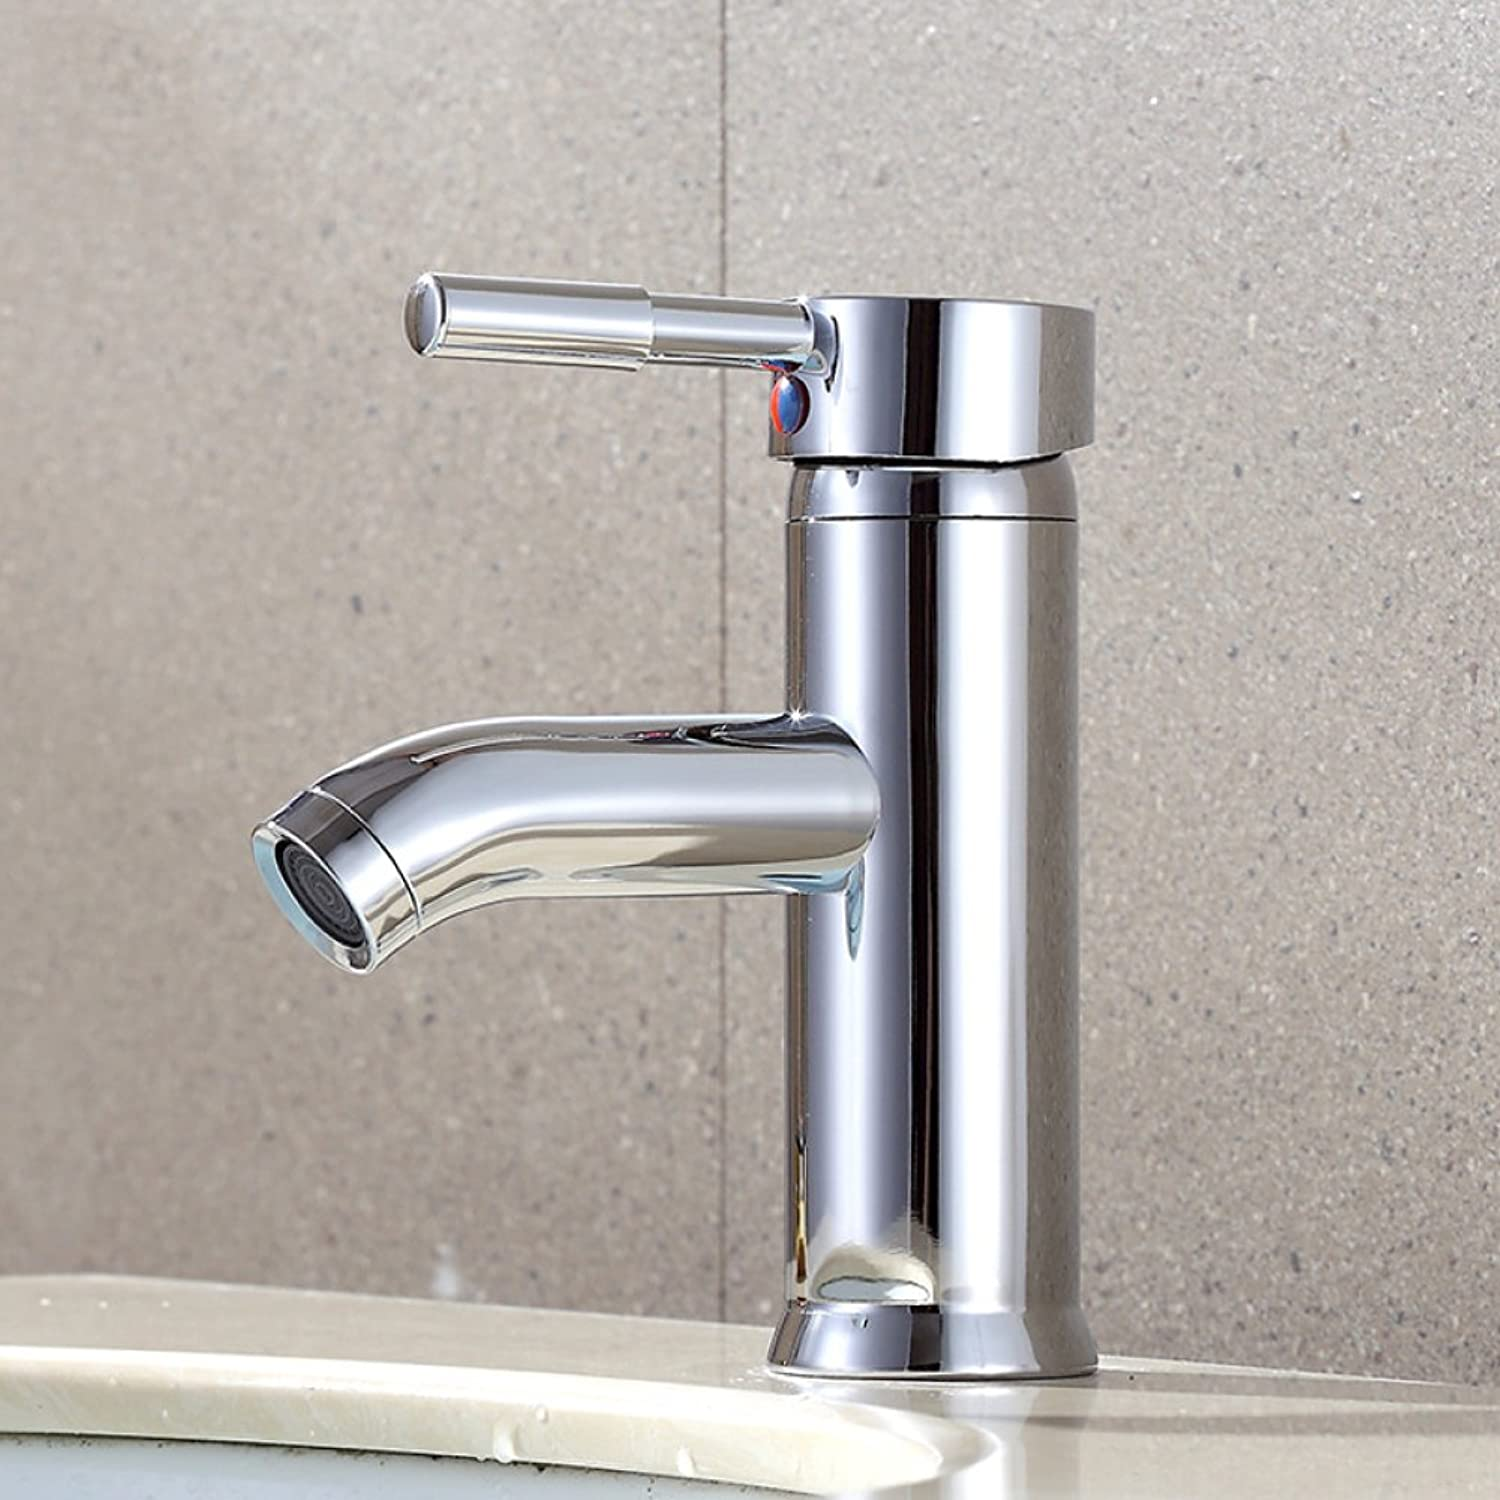 FW Furniture Ware FW Stainless steel plated basin faucet wash basin hot and cold faucet mixing faucet